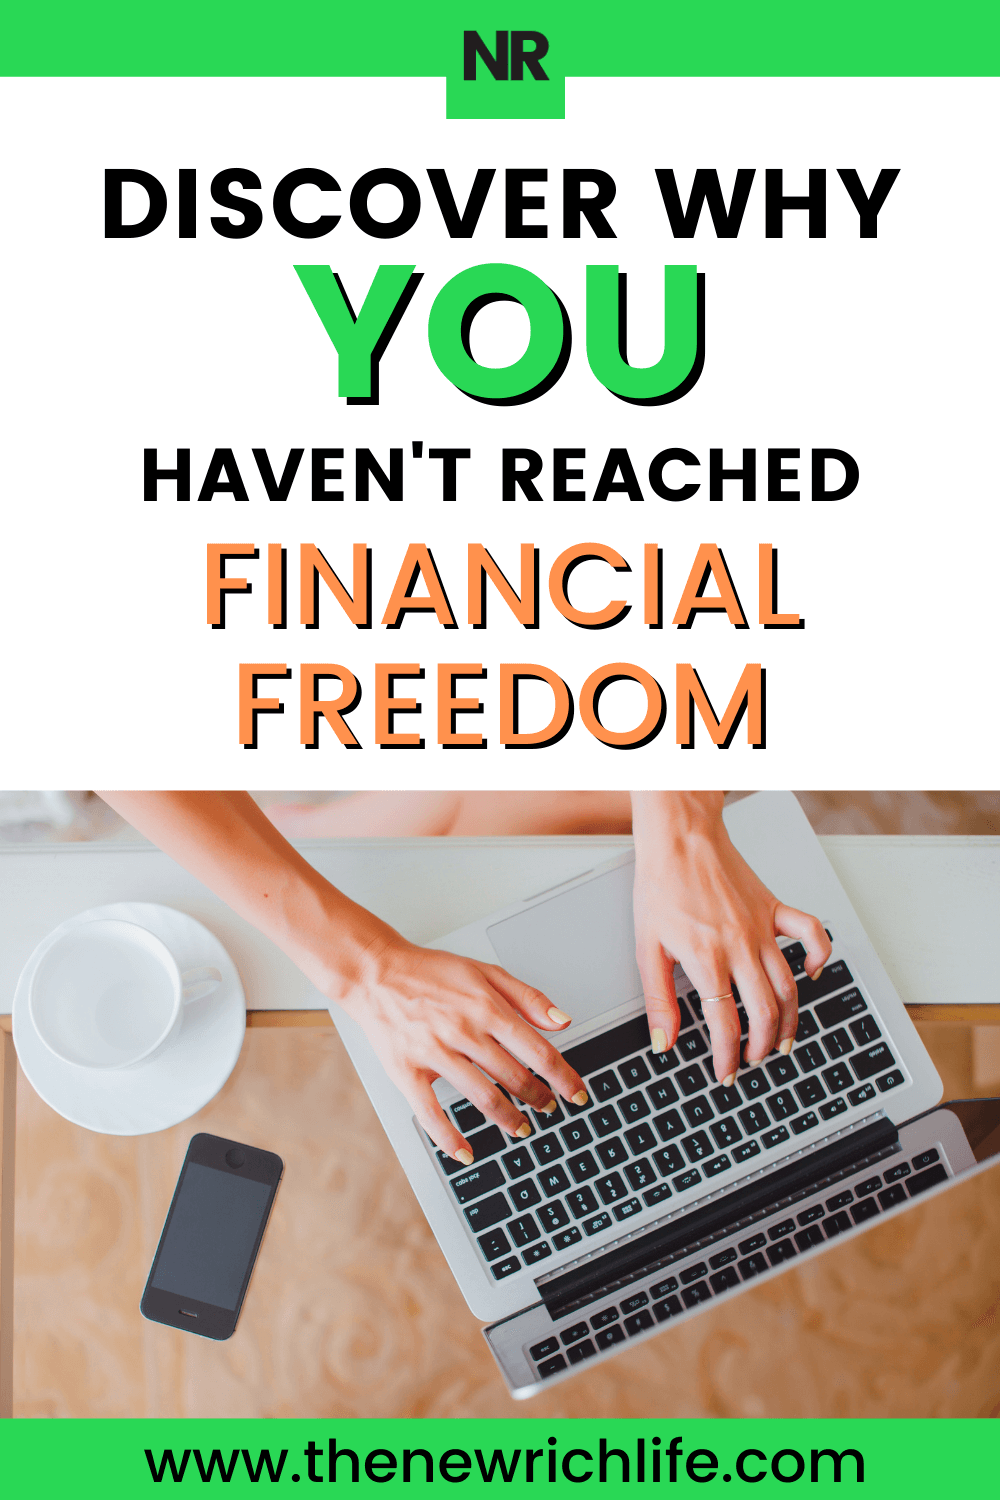 6 Reasons Why You Haven't Gotten Closer to Financial Freedom